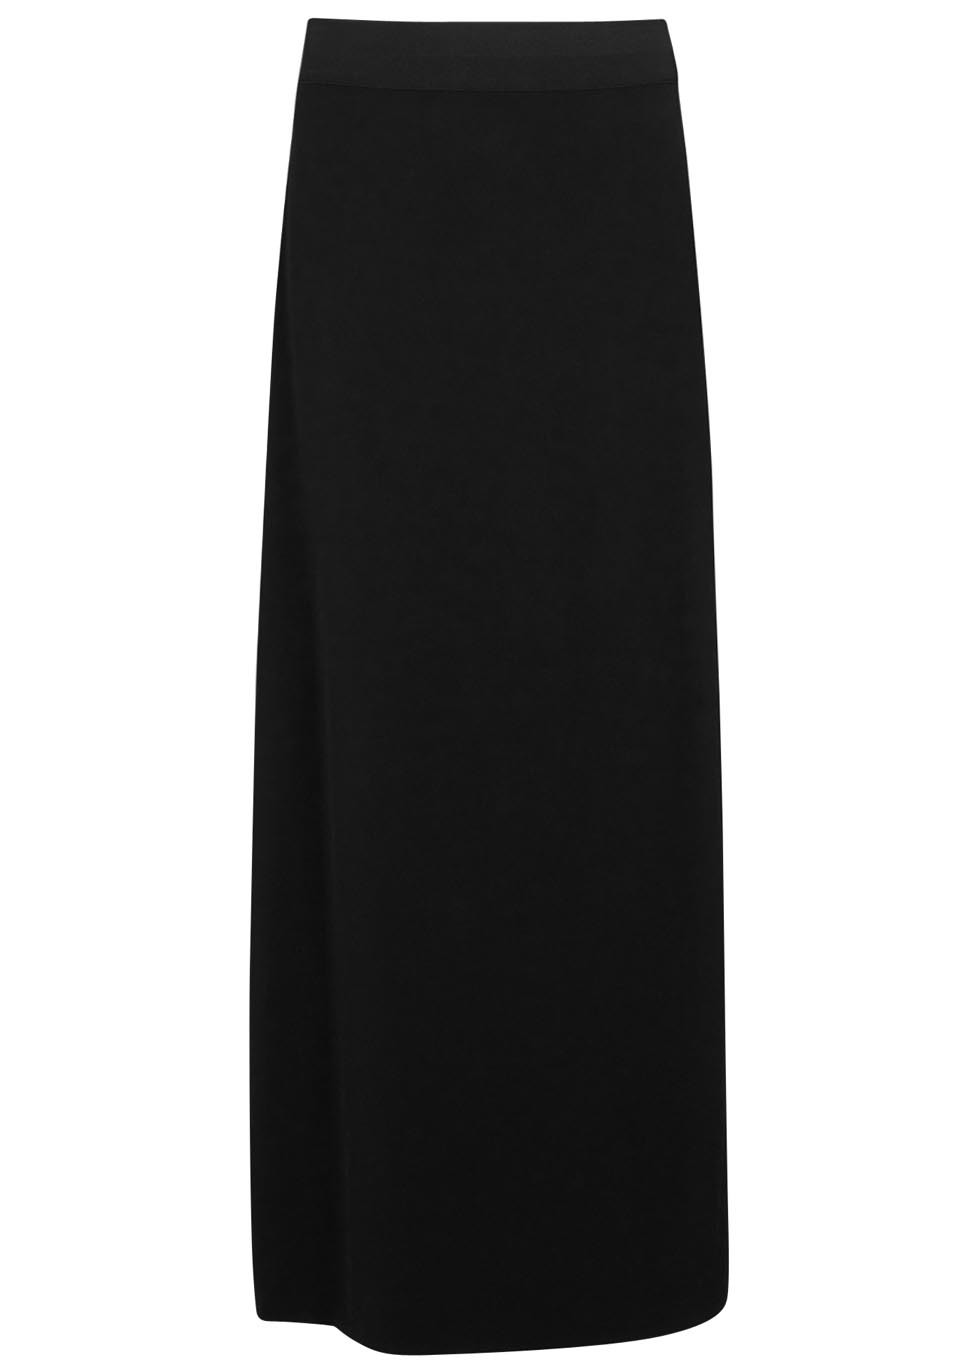 Black Wrap Effect Crepe Maxi Skirt - pattern: plain; style: wrap/faux wrap; length: ankle length; fit: body skimming; waist: mid/regular rise; predominant colour: black; occasions: casual; texture group: crepes; pattern type: fabric; fibres: viscose/rayon - mix; season: s/s 2016; wardrobe: basic